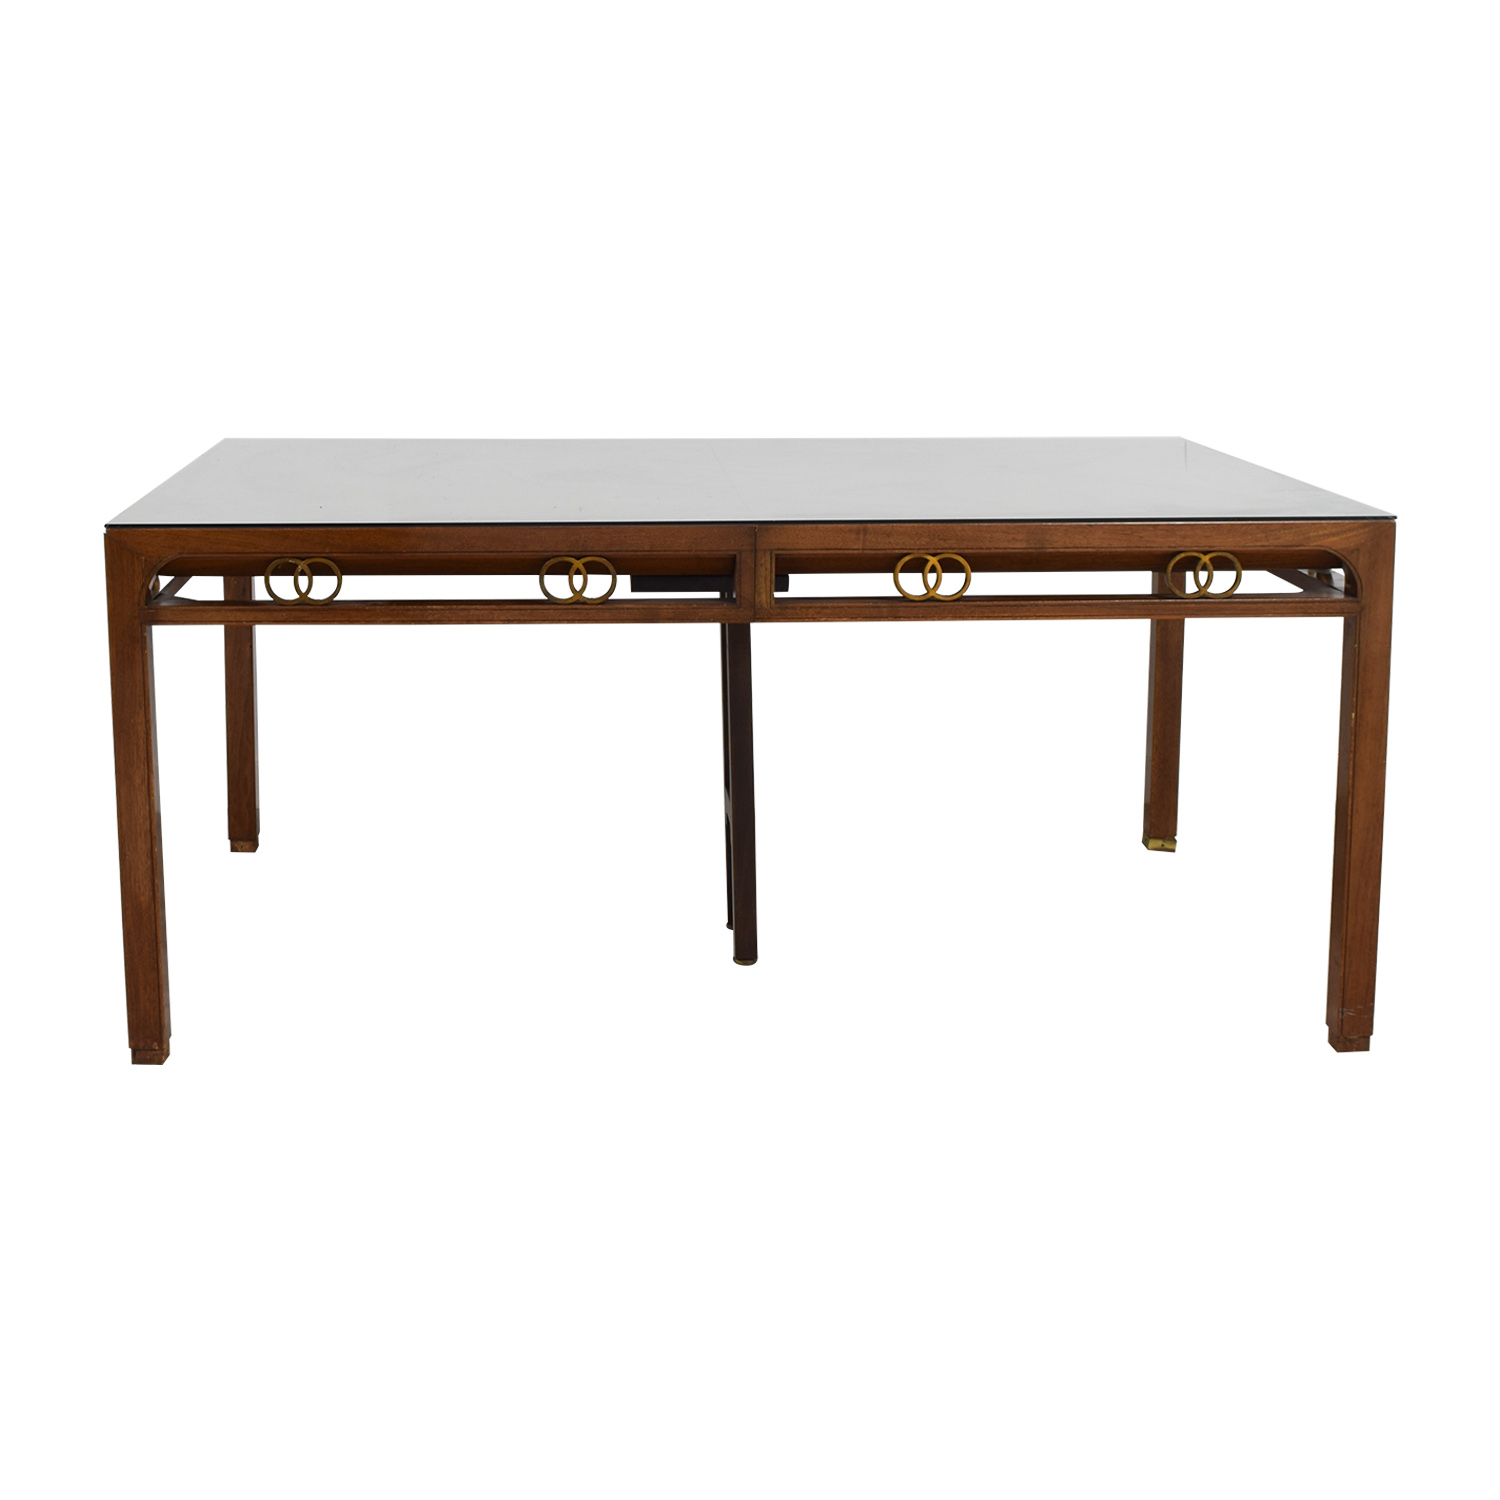 Gentil Baker Baker Mid Century Modern Dining Room Table Coupon ...